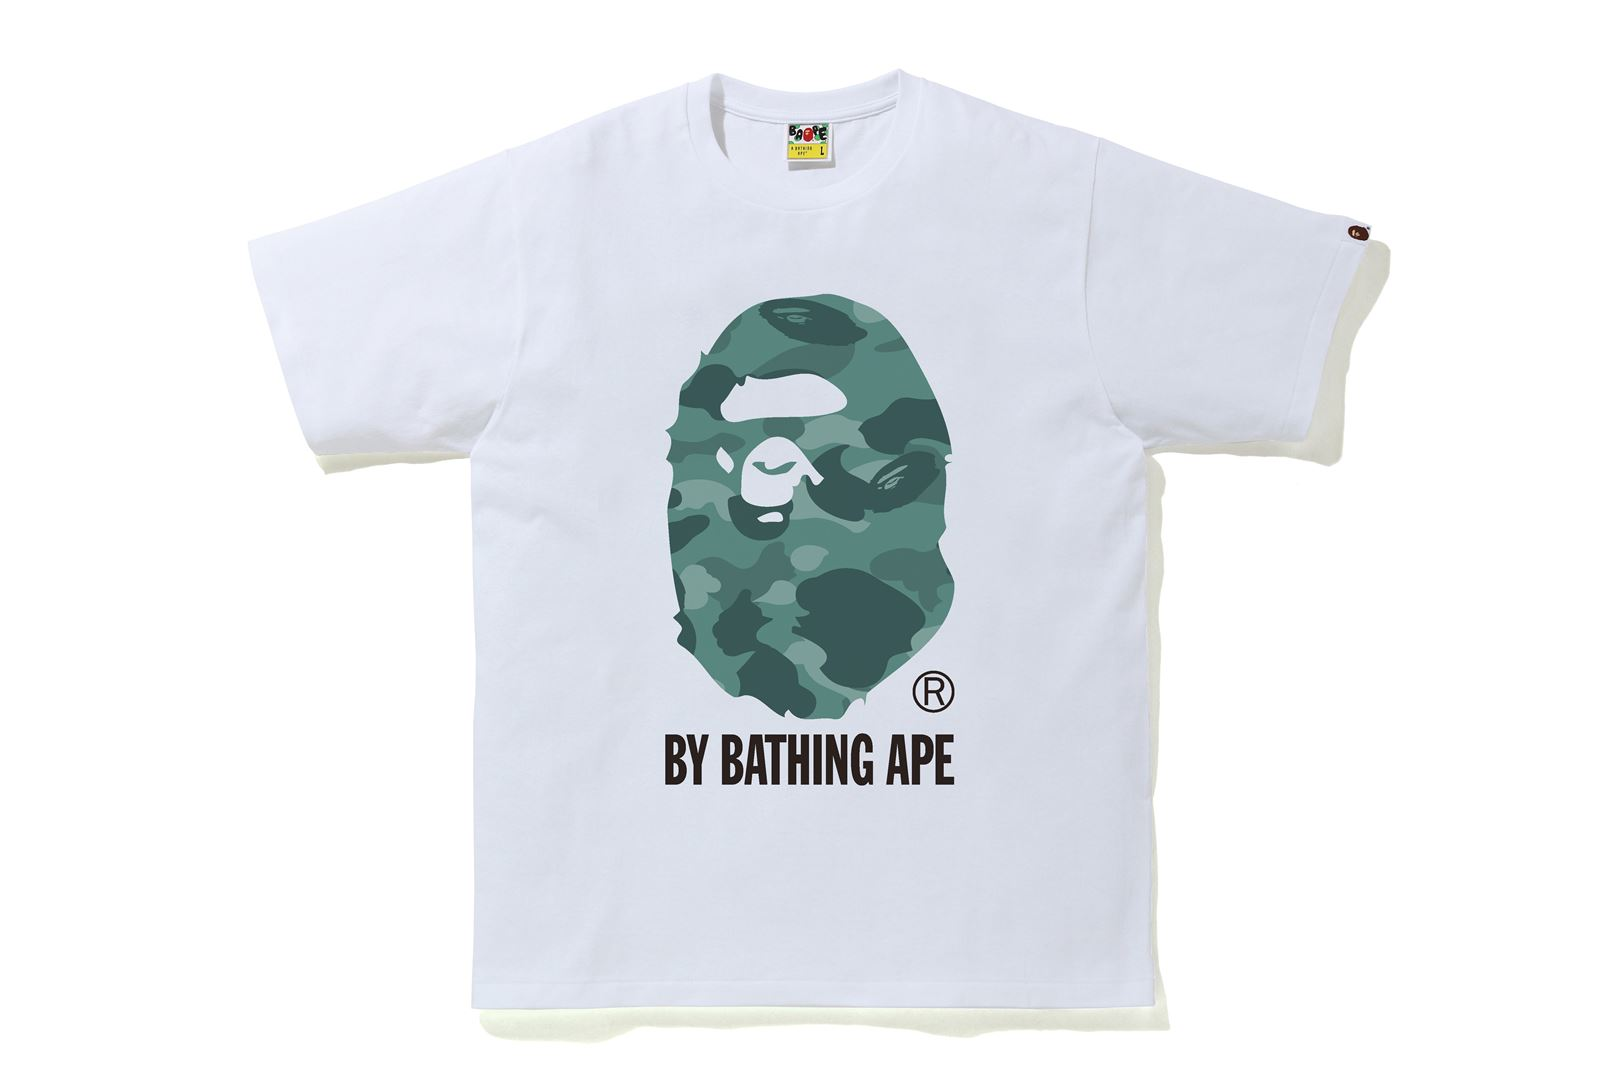 TSHIRT_COLOR CAMO BY BATHING APE_S/S 21